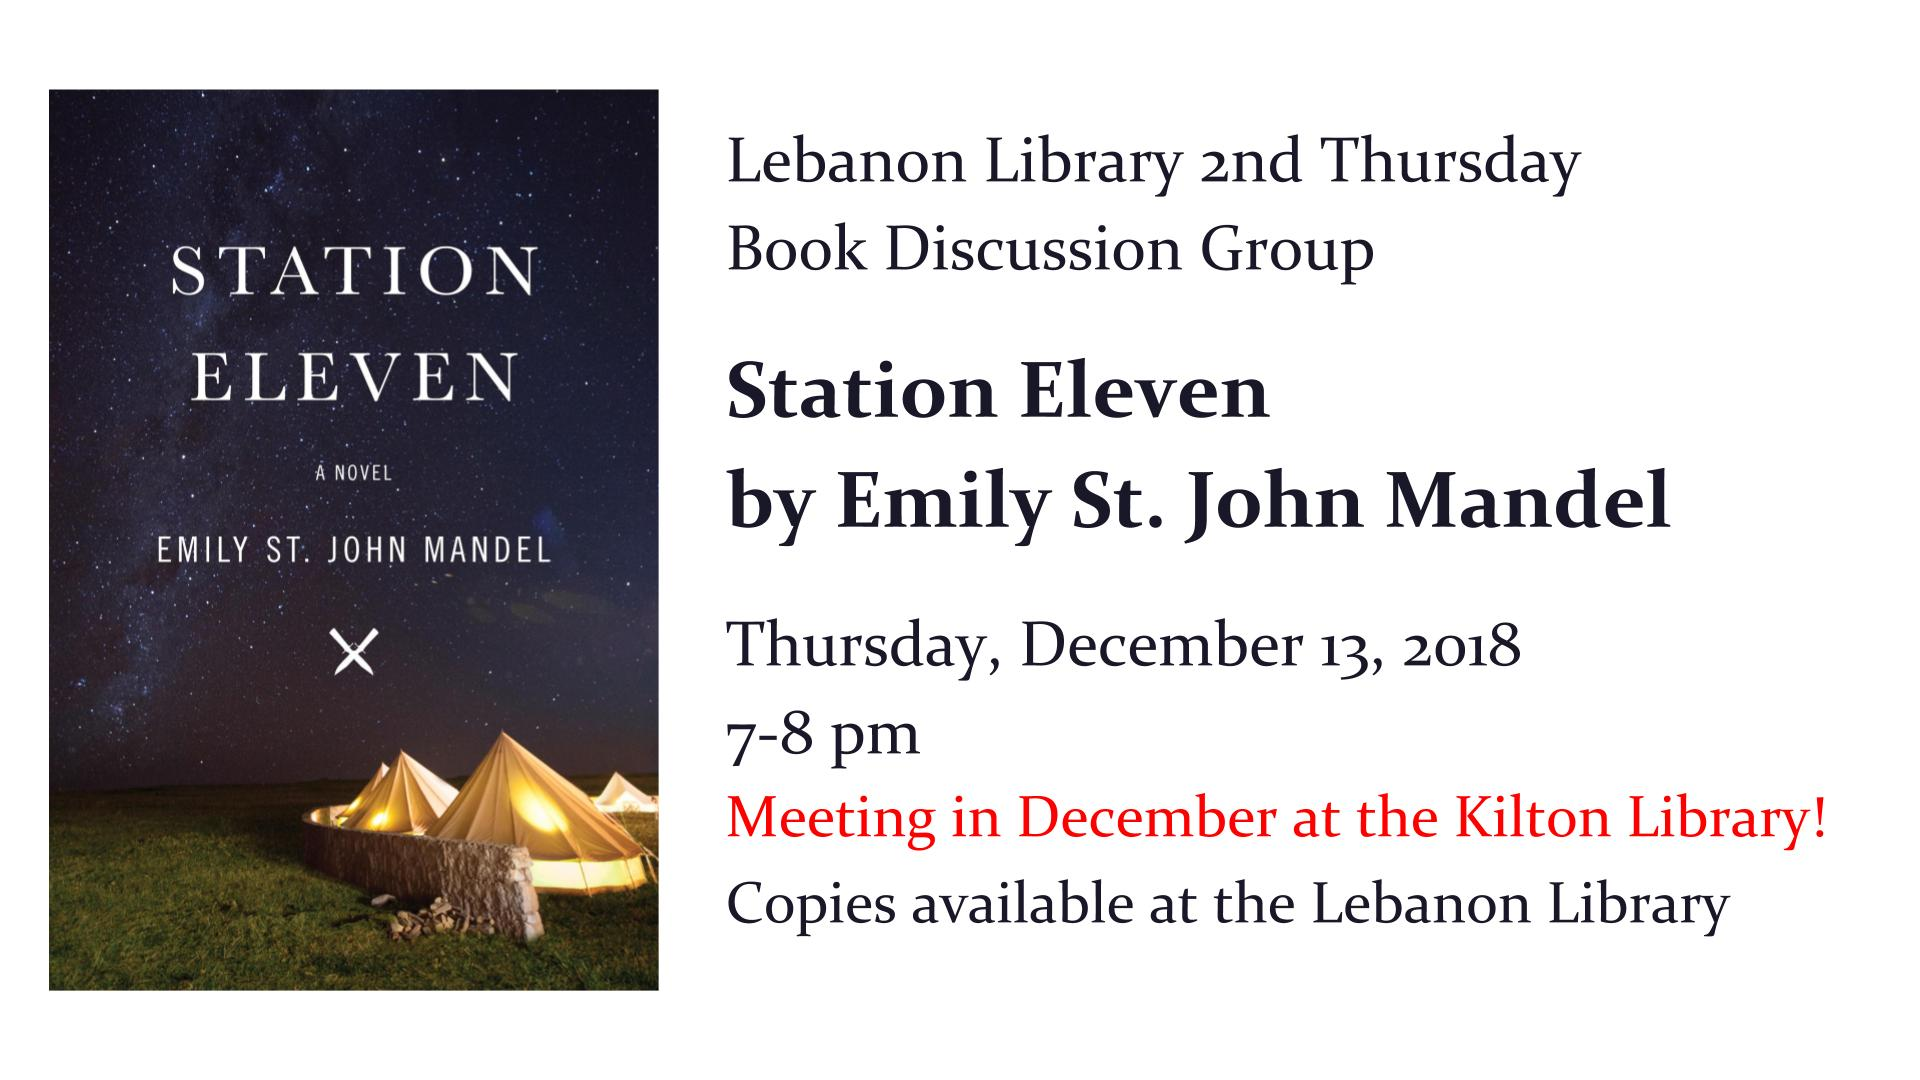 Lebanon Library 2nd Thursday  Book Discussion Group   Station Eleven  by Emily St. John Mandel     Thursday, December 13, 2018  7-8 pm   Meeting in December at the Kilton Library! Copies available at the Lebanon Library